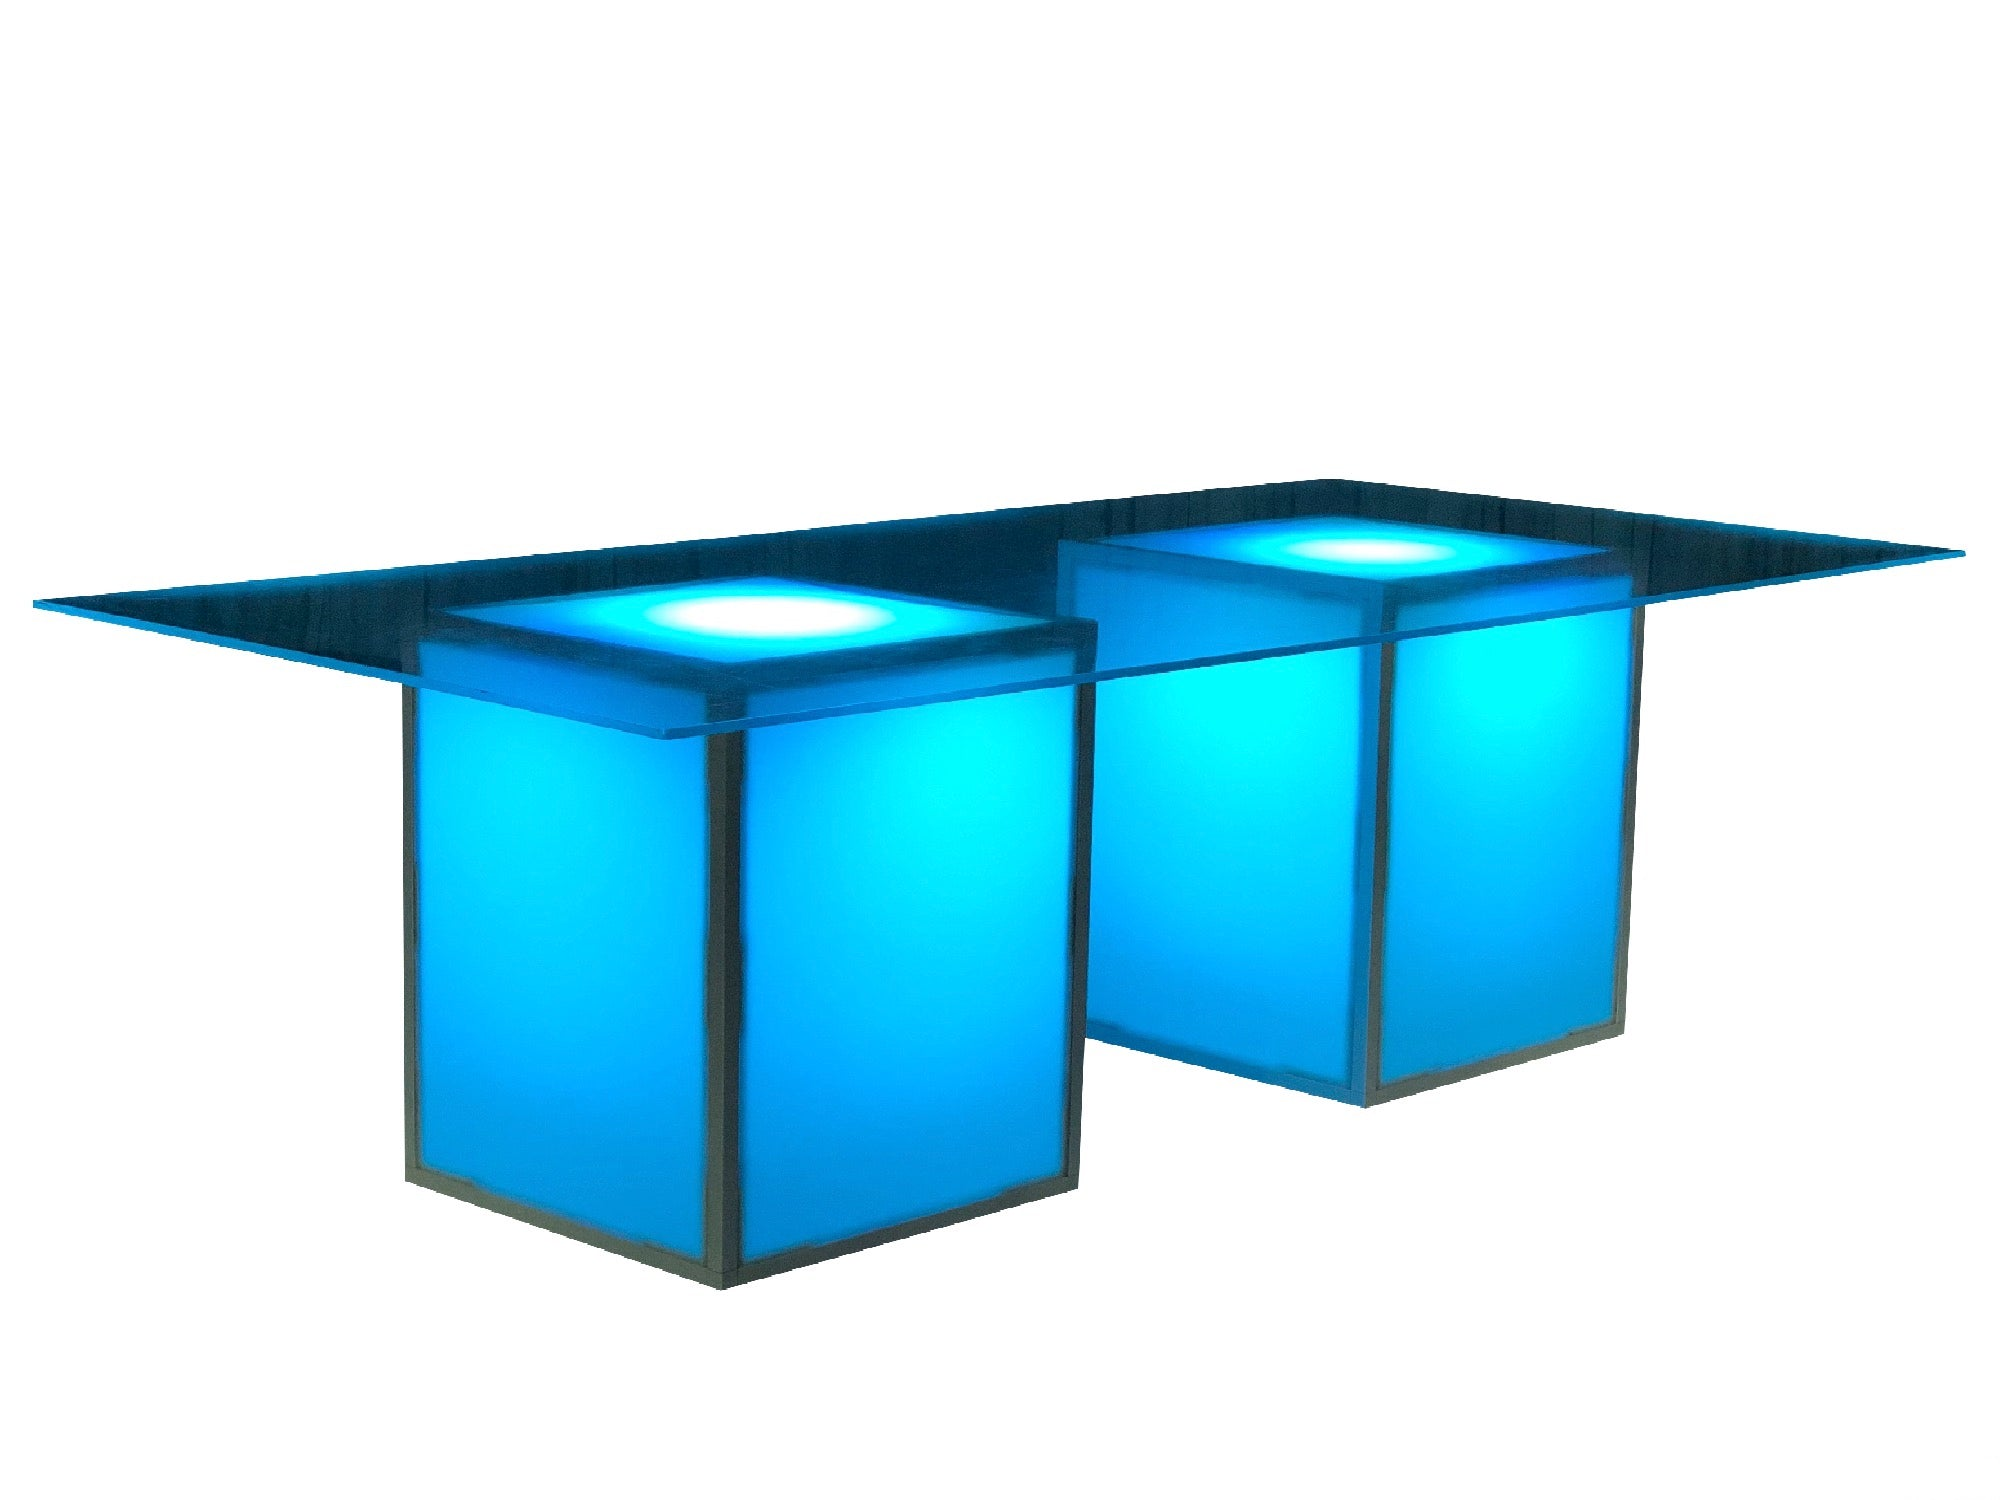 ILLUMINATED ACRYLIC ESTATE TABLE